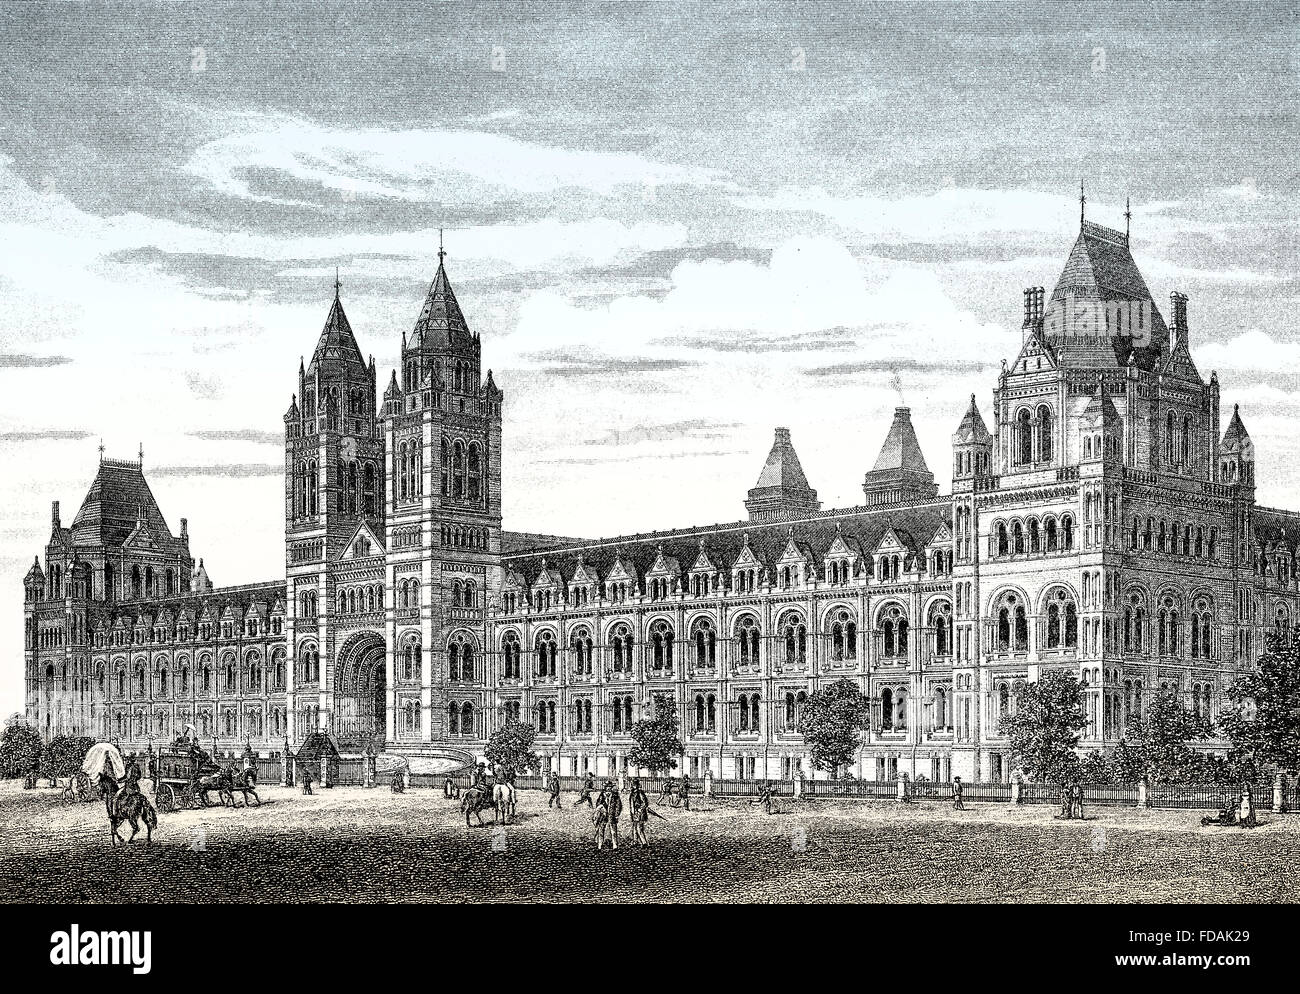 The Natural History Museum, South Kensington, 19th century, London, England - Stock Image